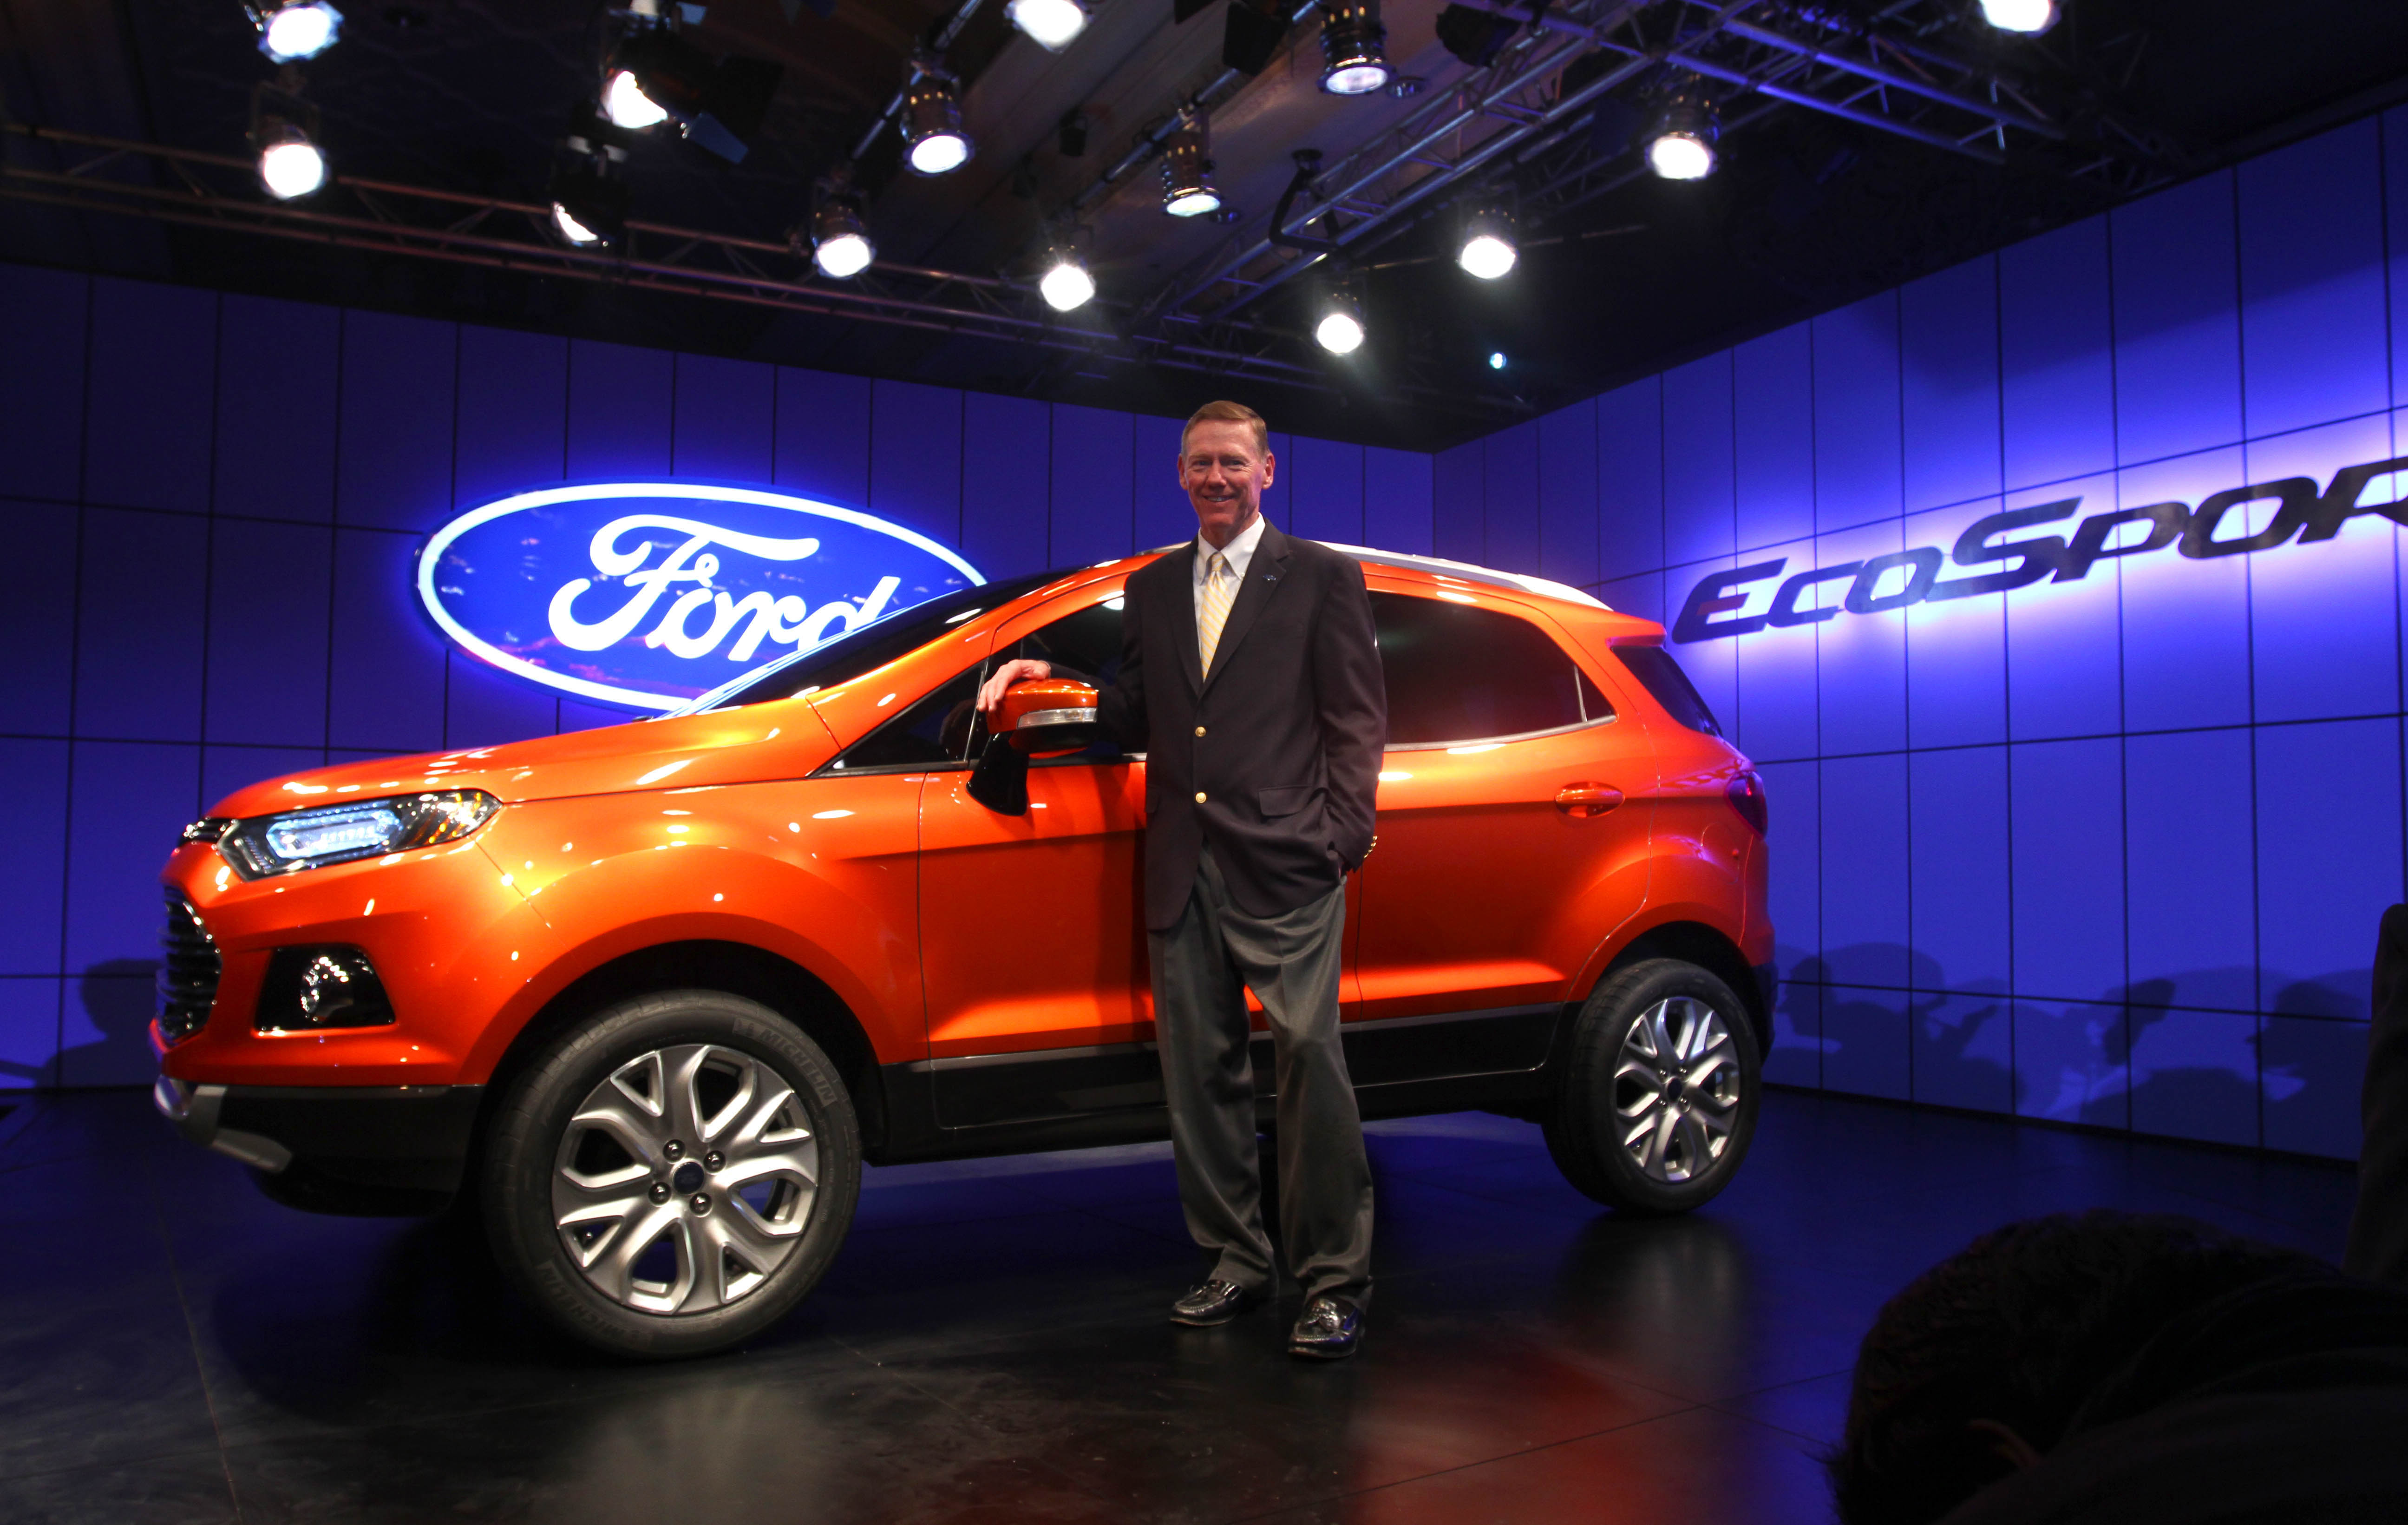 Alan Mulally, president and CEO of Ford Motor Company unveils Ford's new compact SUV EcoSport at The Taj Palace Hotel in New Delhi.